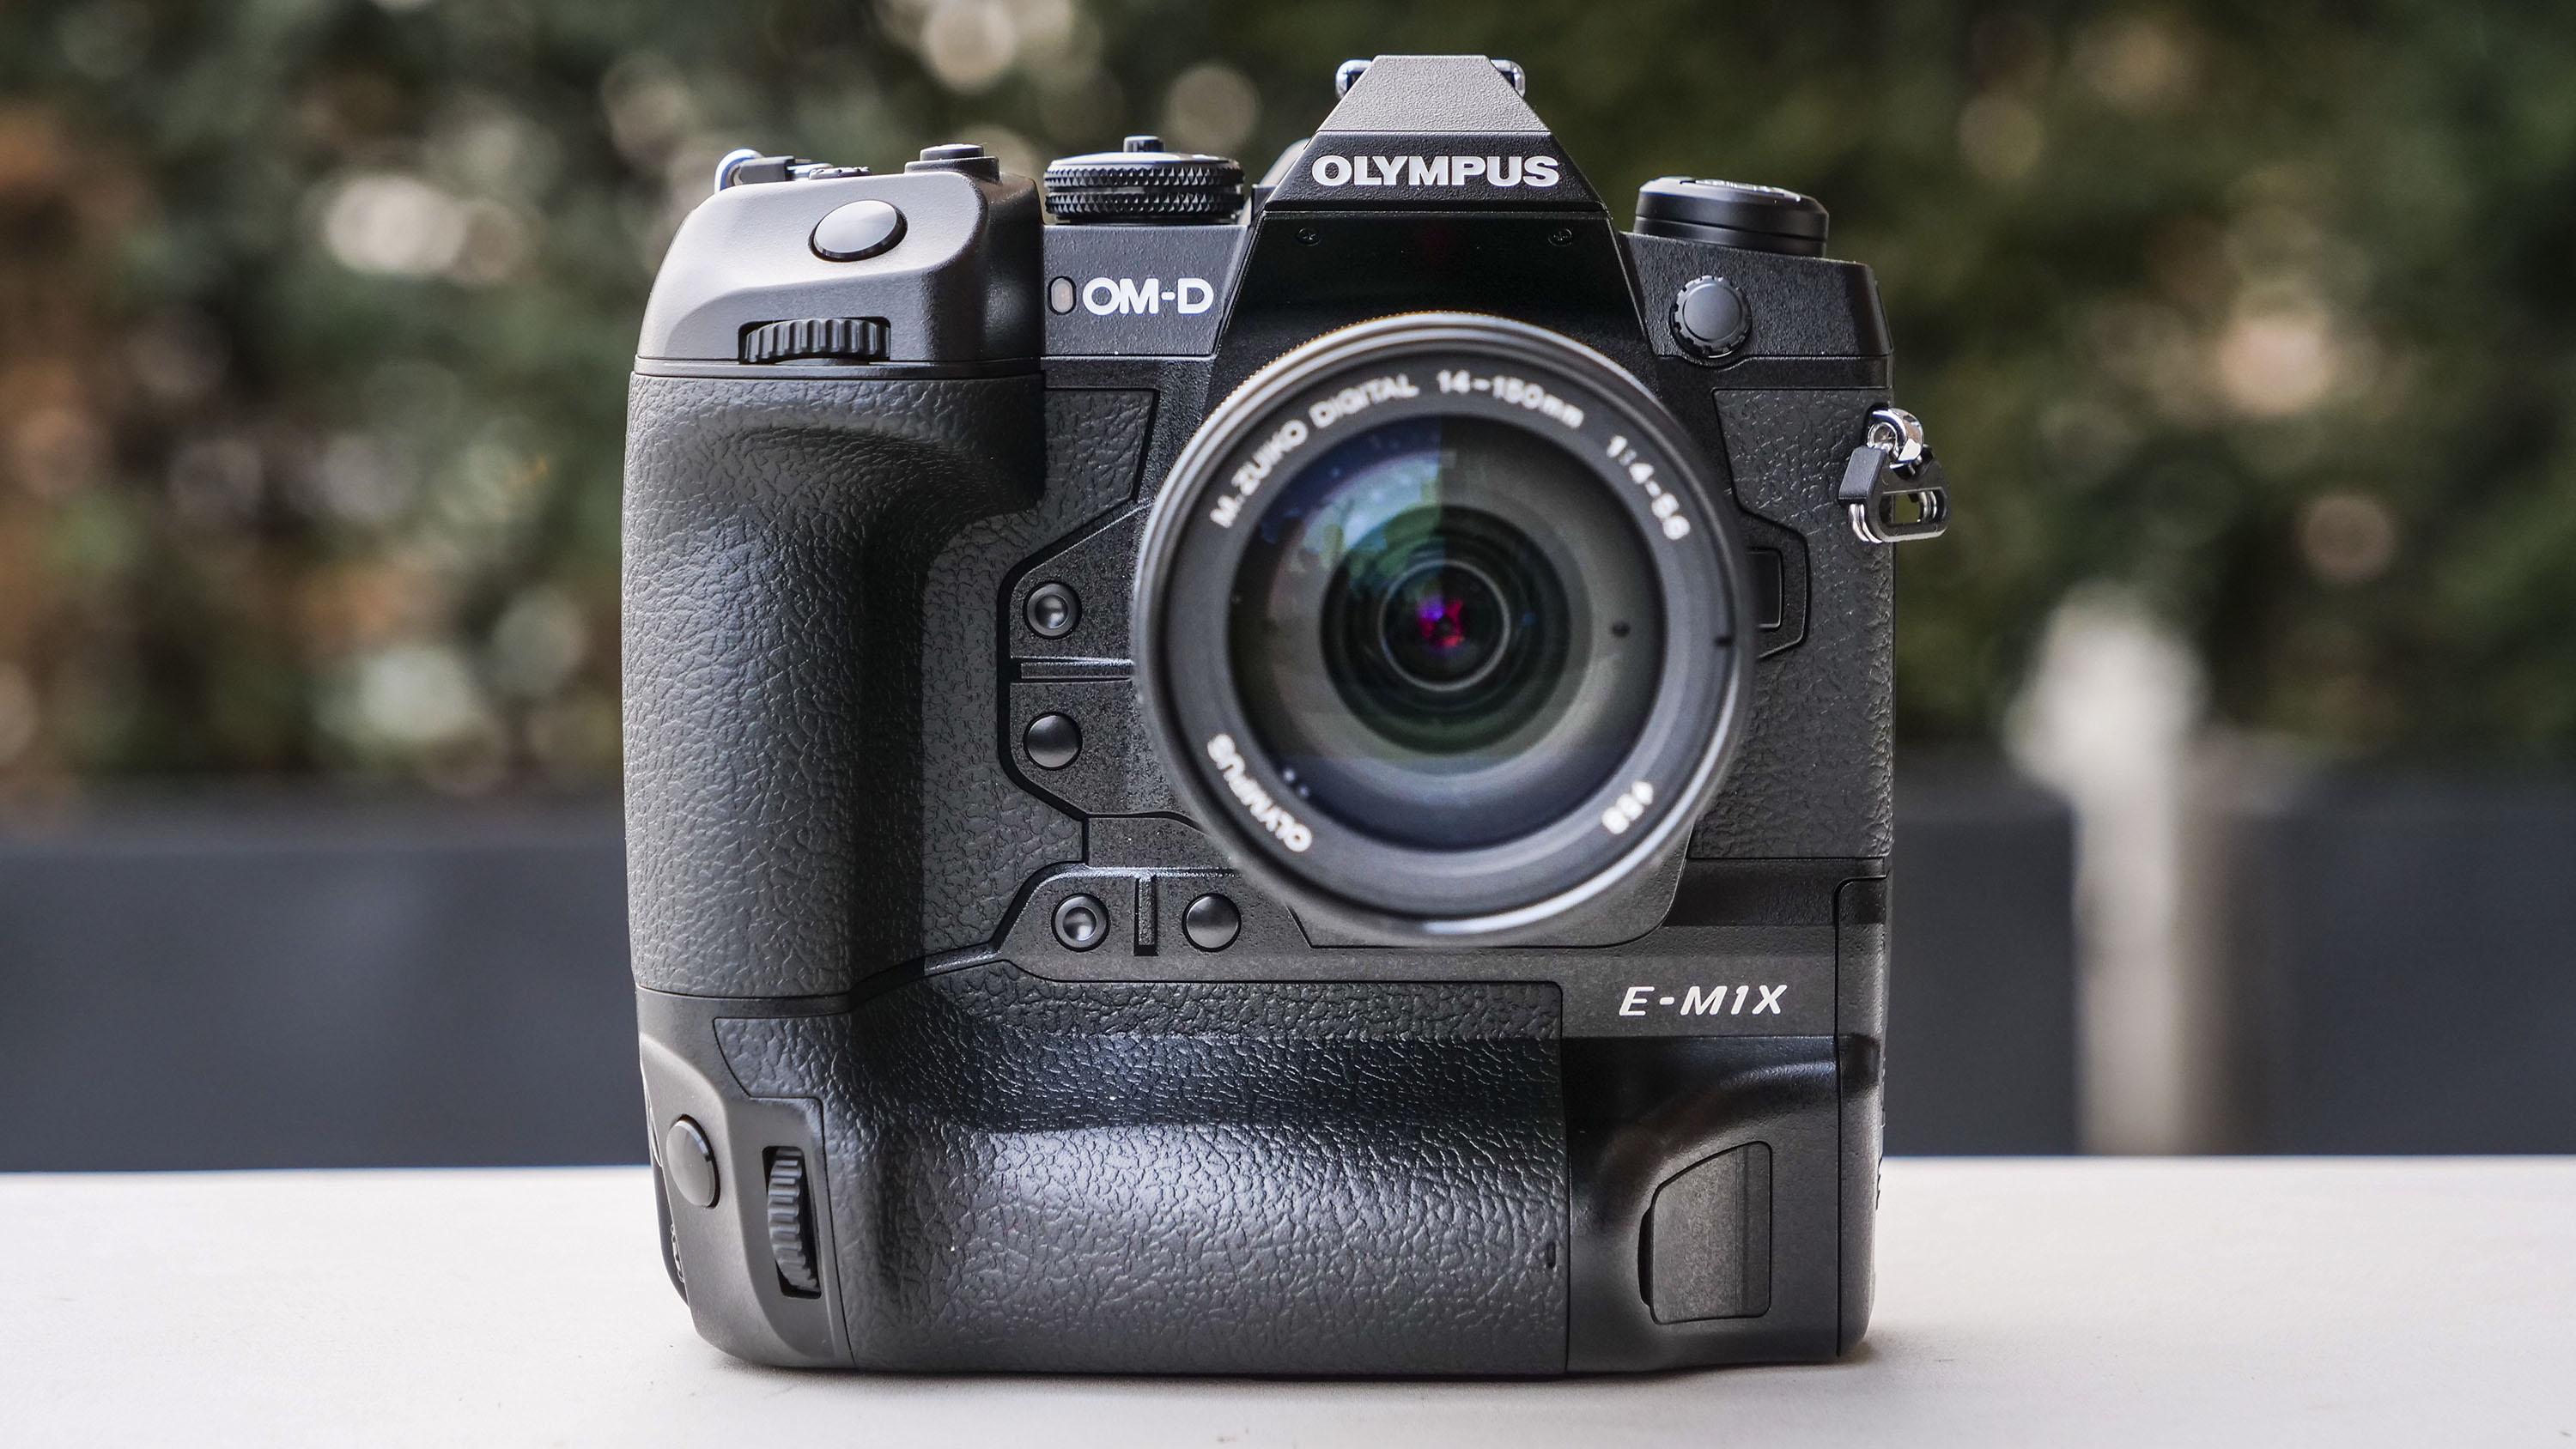 Olympus exits the camera business – here's what it means for OM-D and Zuiko fans